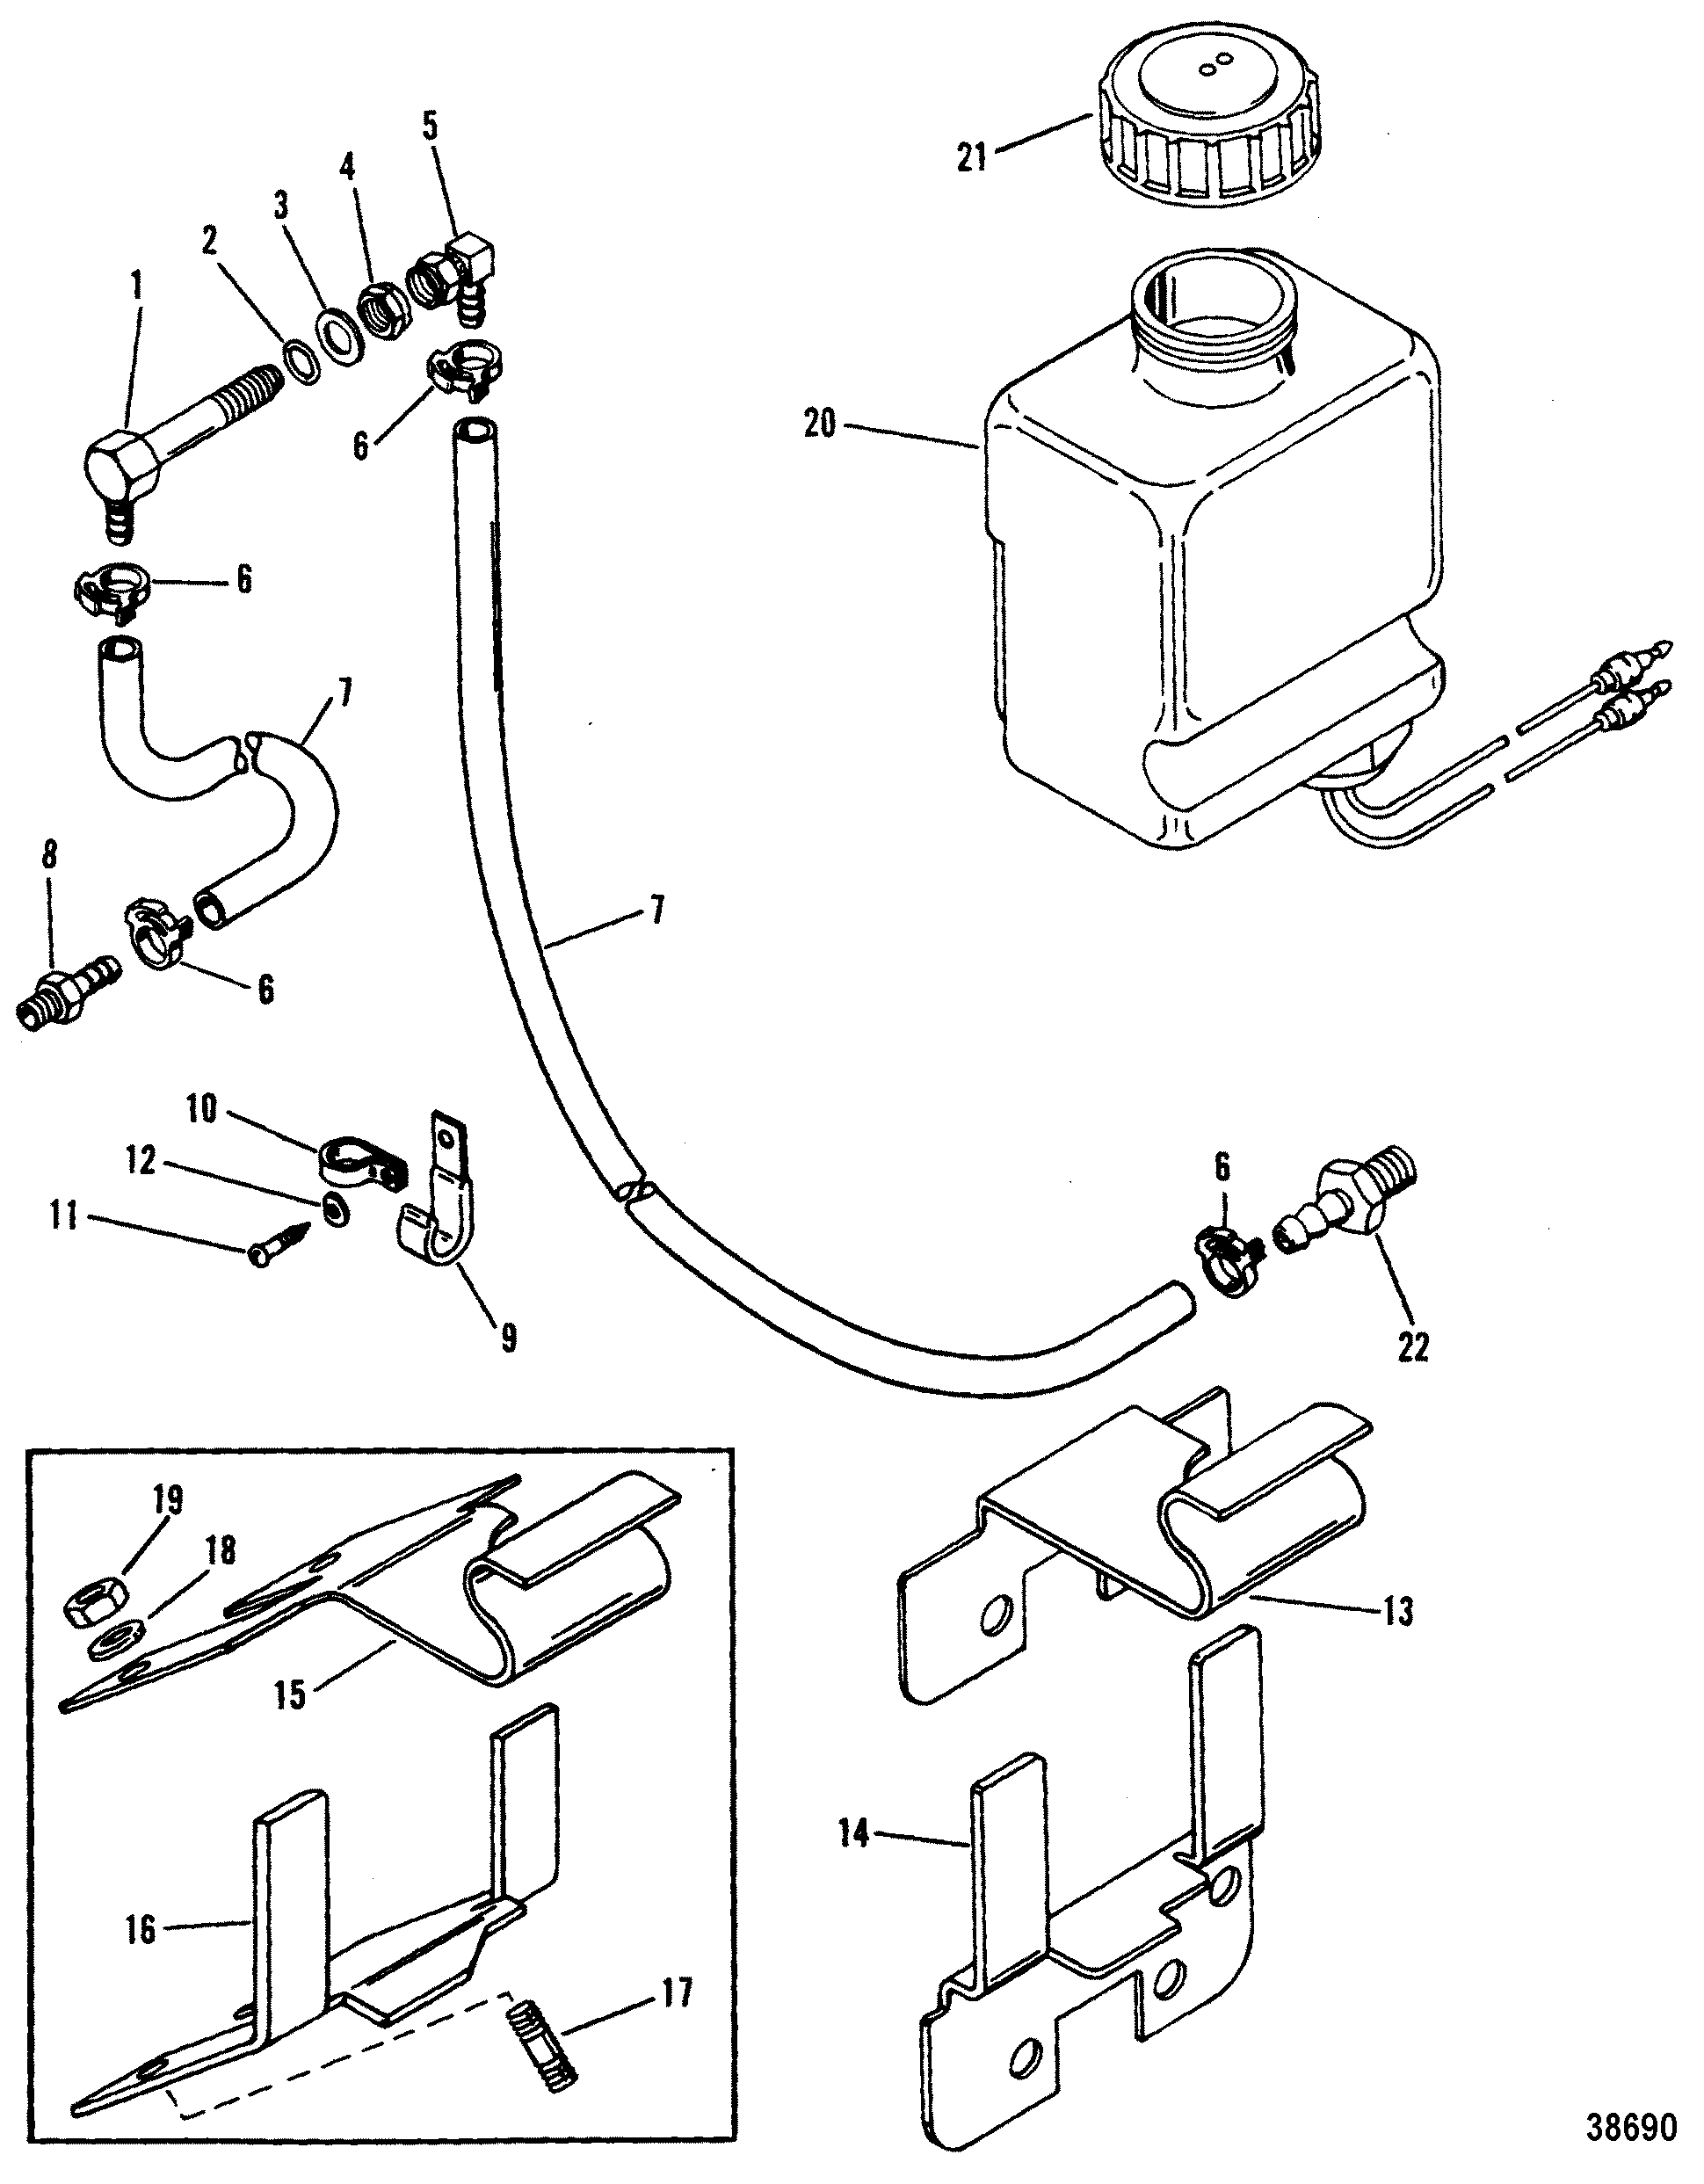 Delta Table Saw Wiring Diagram furthermore Small Relay Switch further 1 The Front Page in addition Honda Atv 350 Rancher Engine Diagram in addition Parts. on wiring diagram yamaha outboard